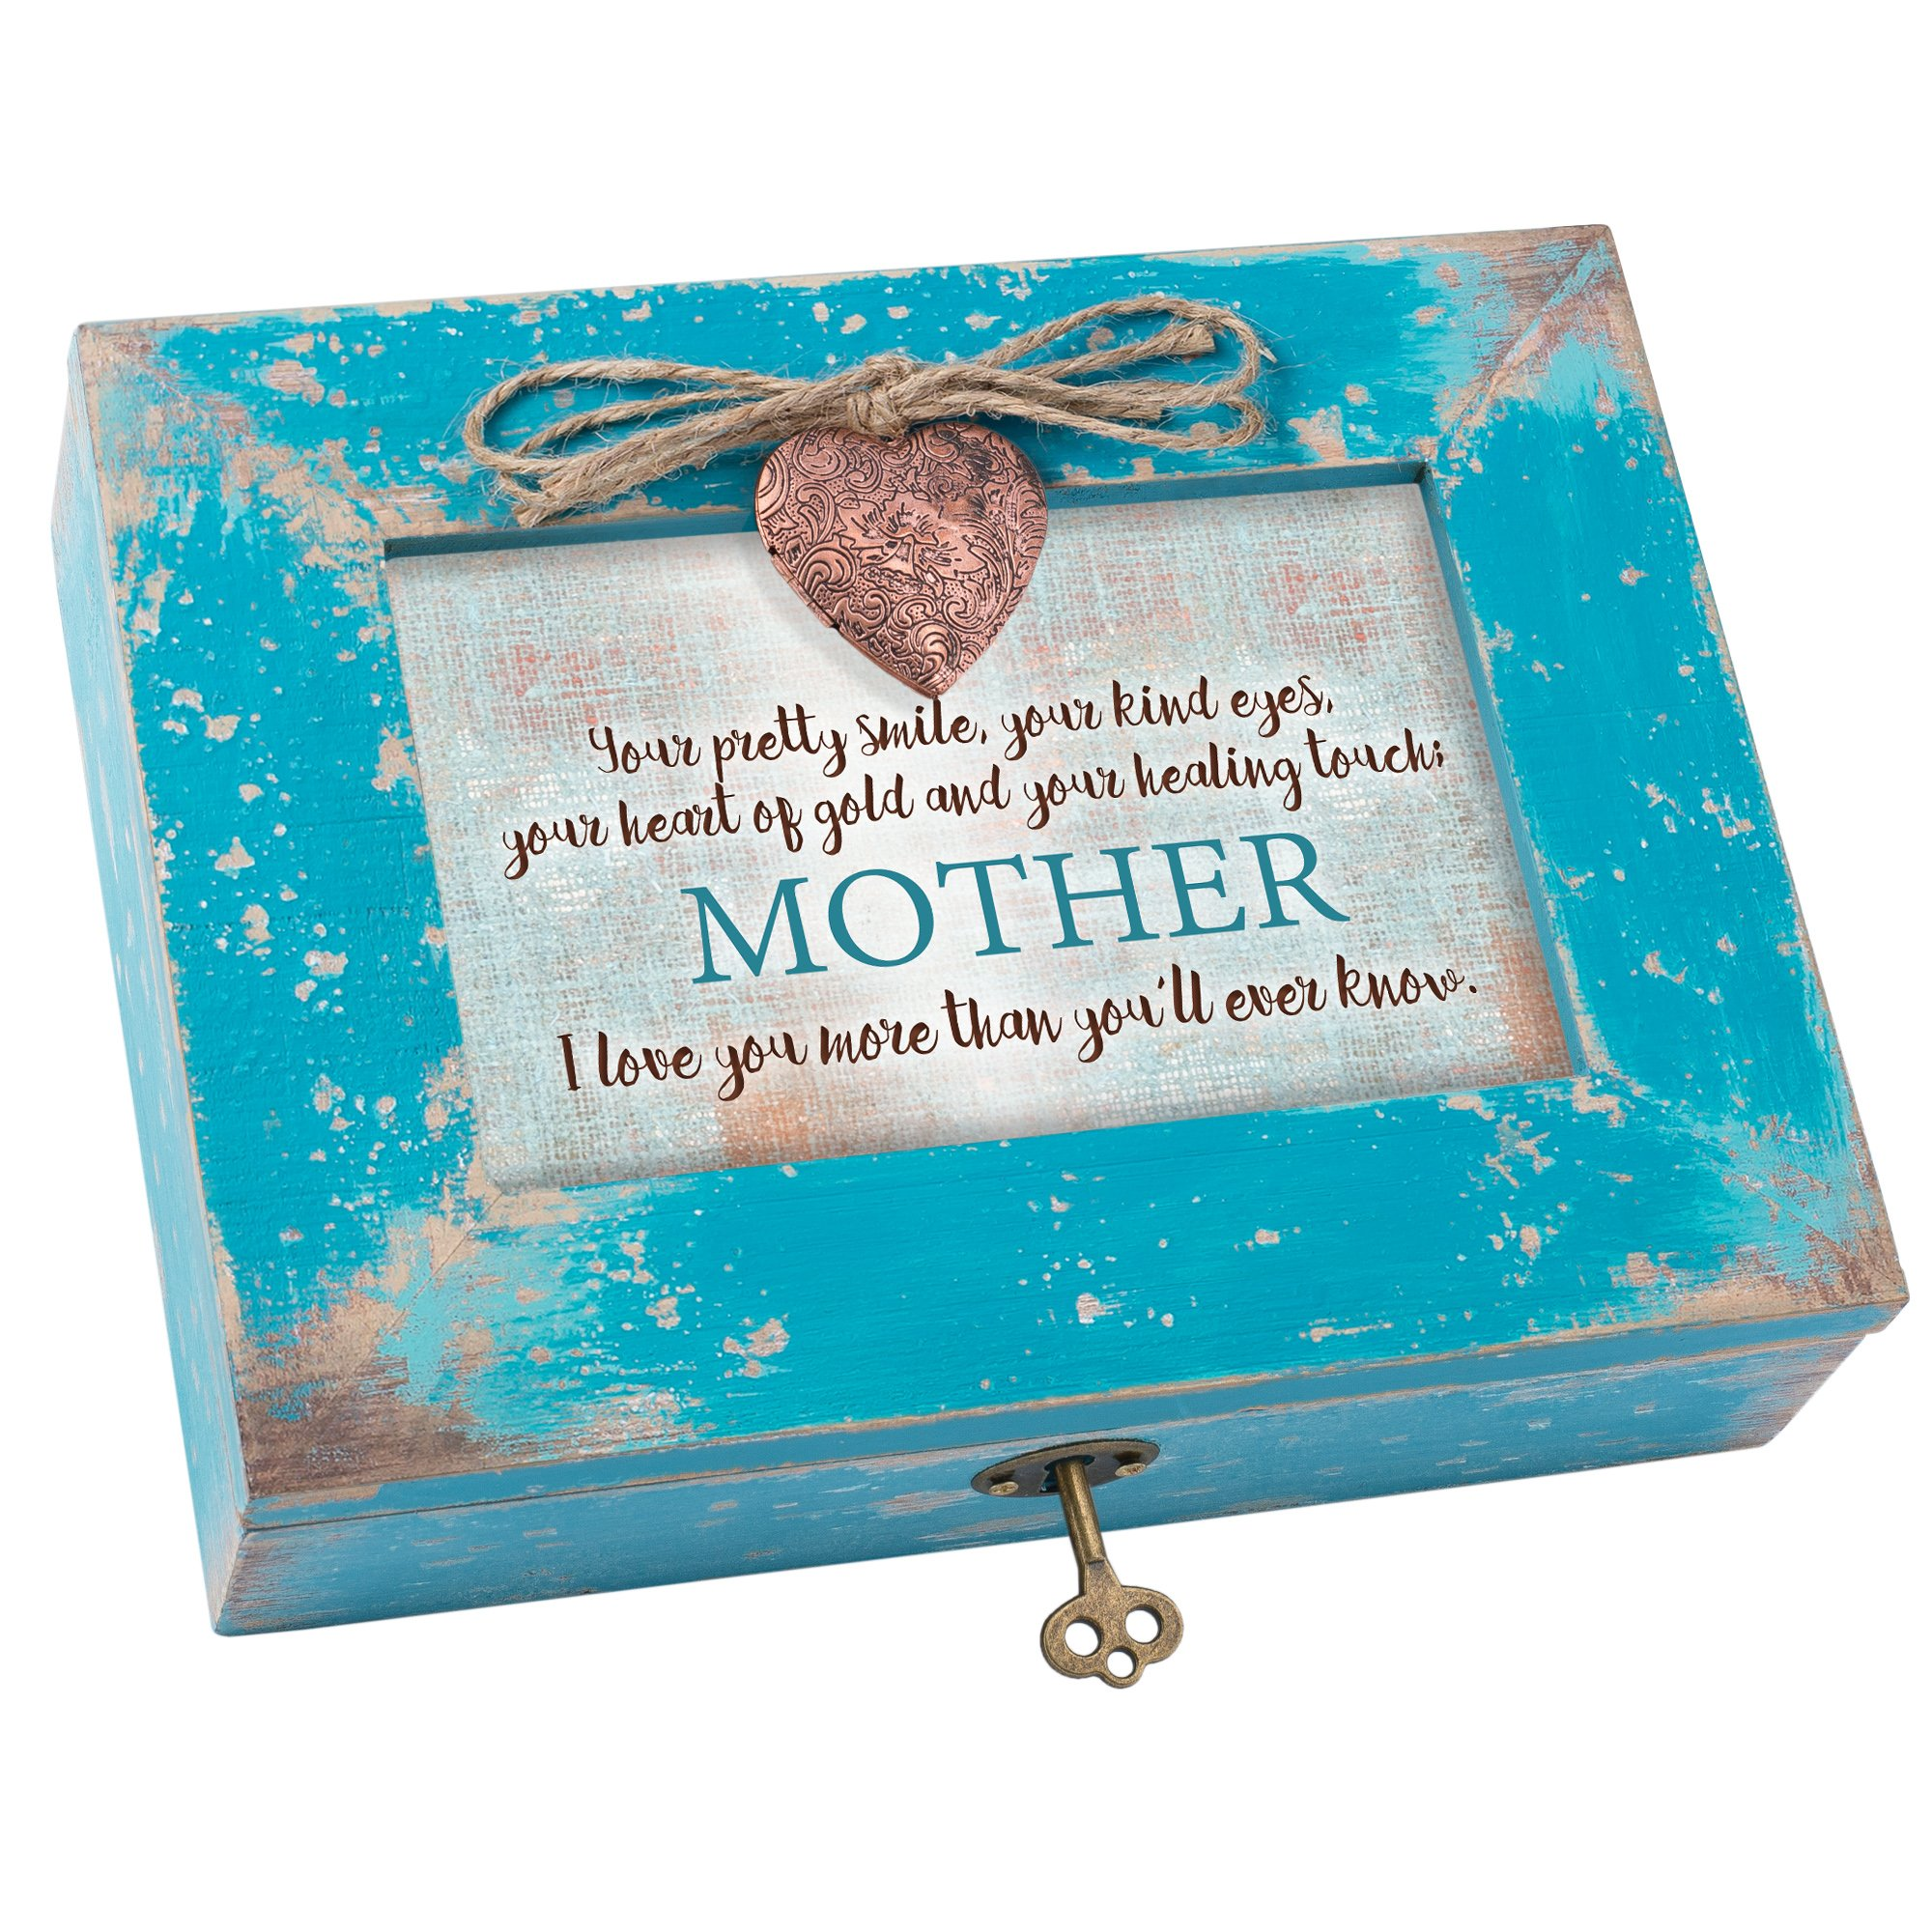 Cottage Garden Your Kind Heart of Gold Mother Teal Wood Locket Jewelry Music Box Plays Tune Wind Beneath My Wings